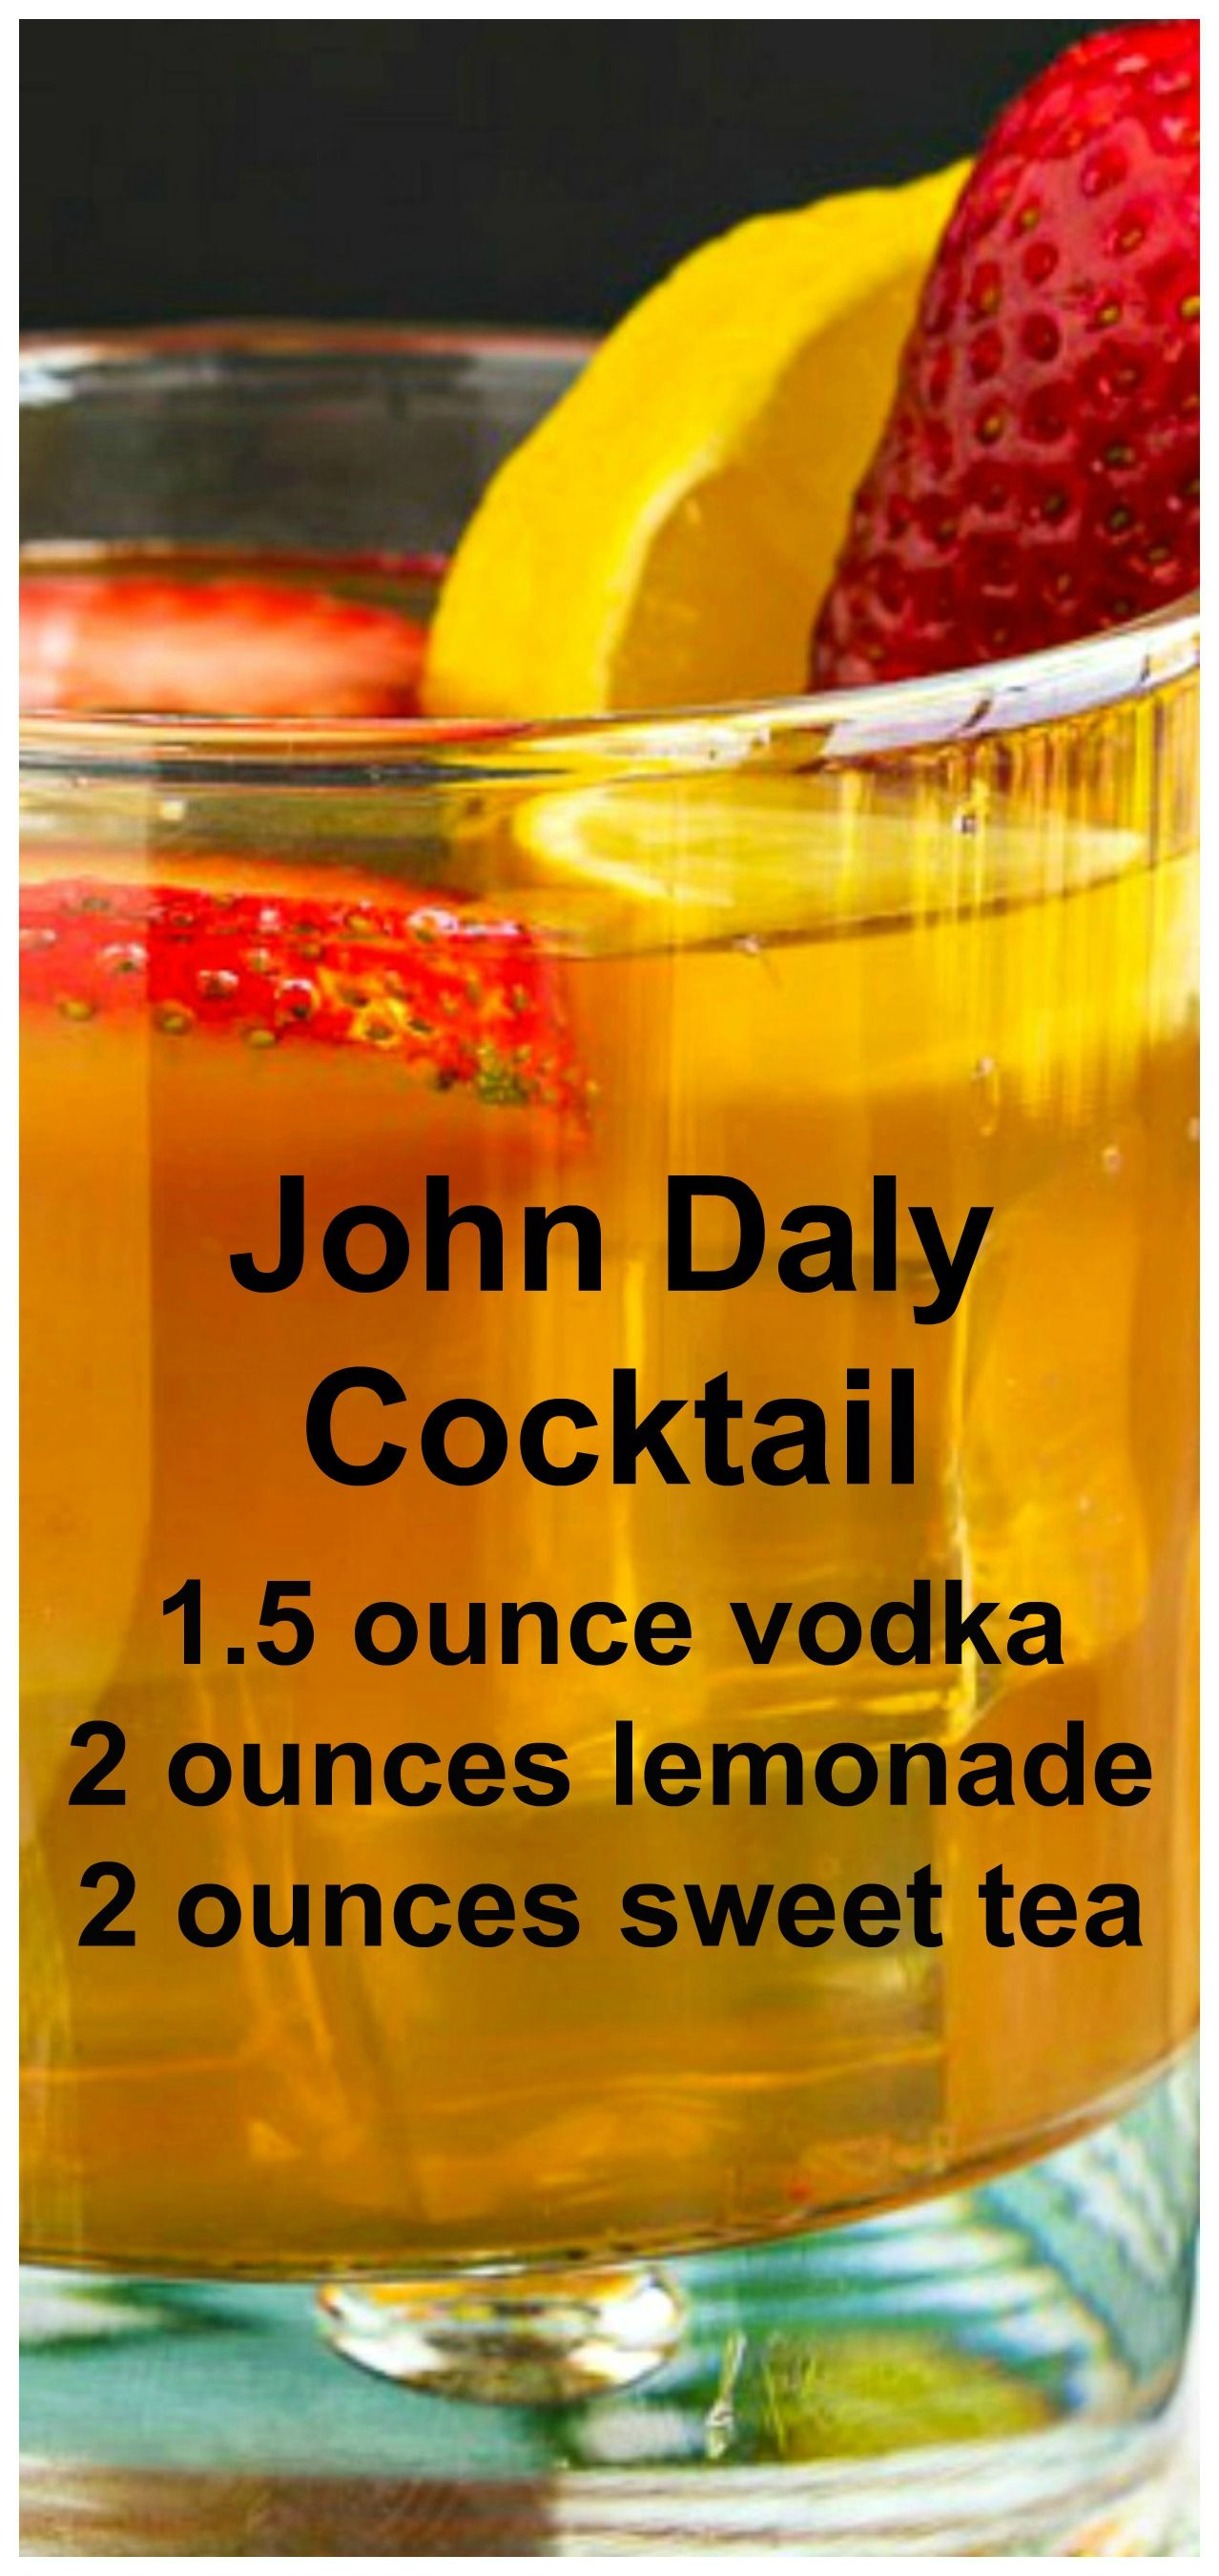 John Daly Cocktail #summeralcoholicdrinks